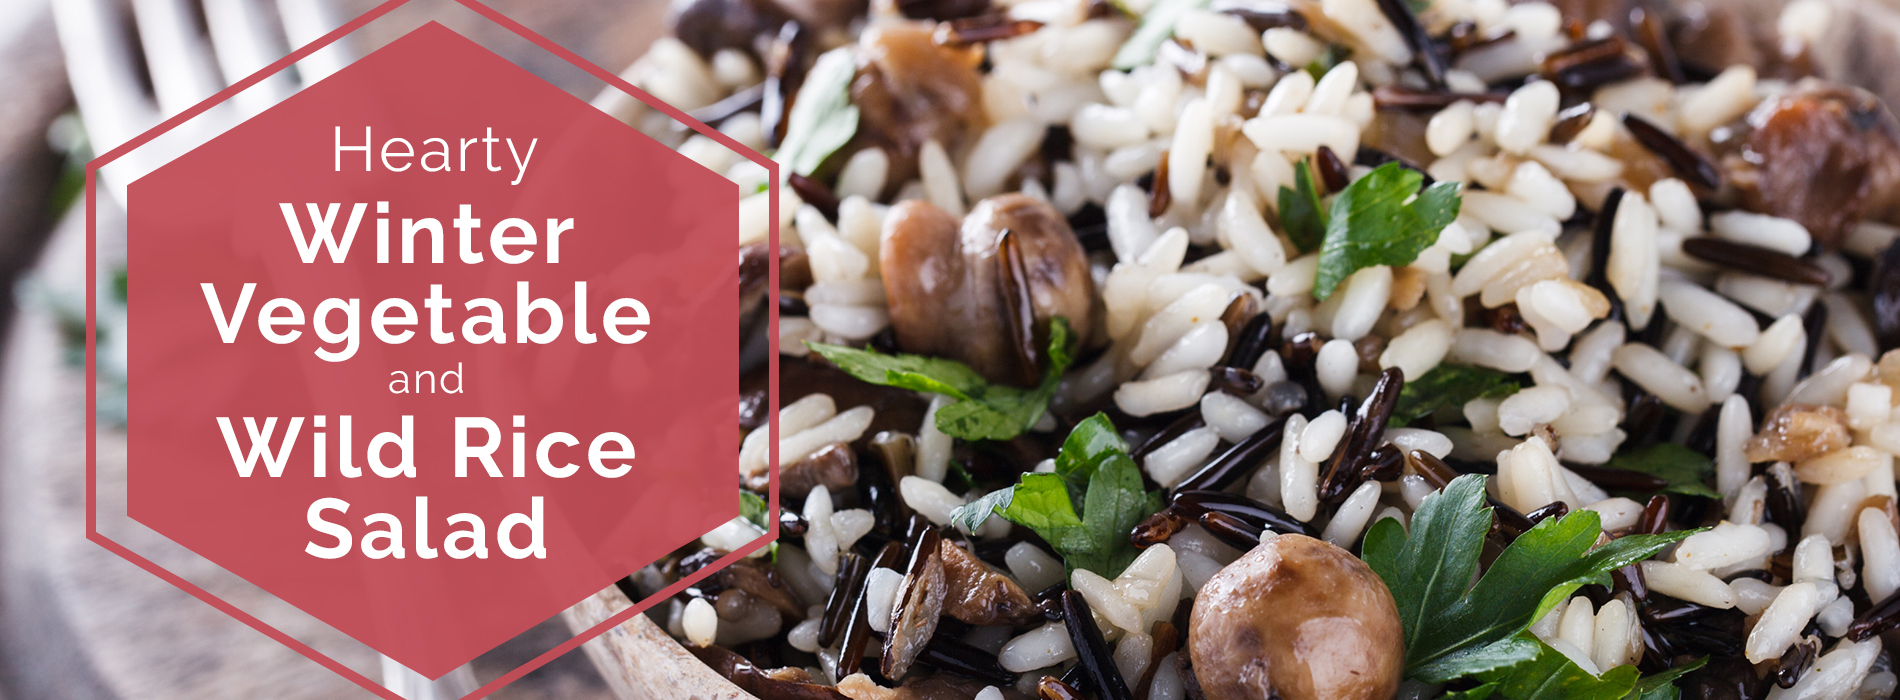 Hearty Winter Vegetable and Wild Rice Salad